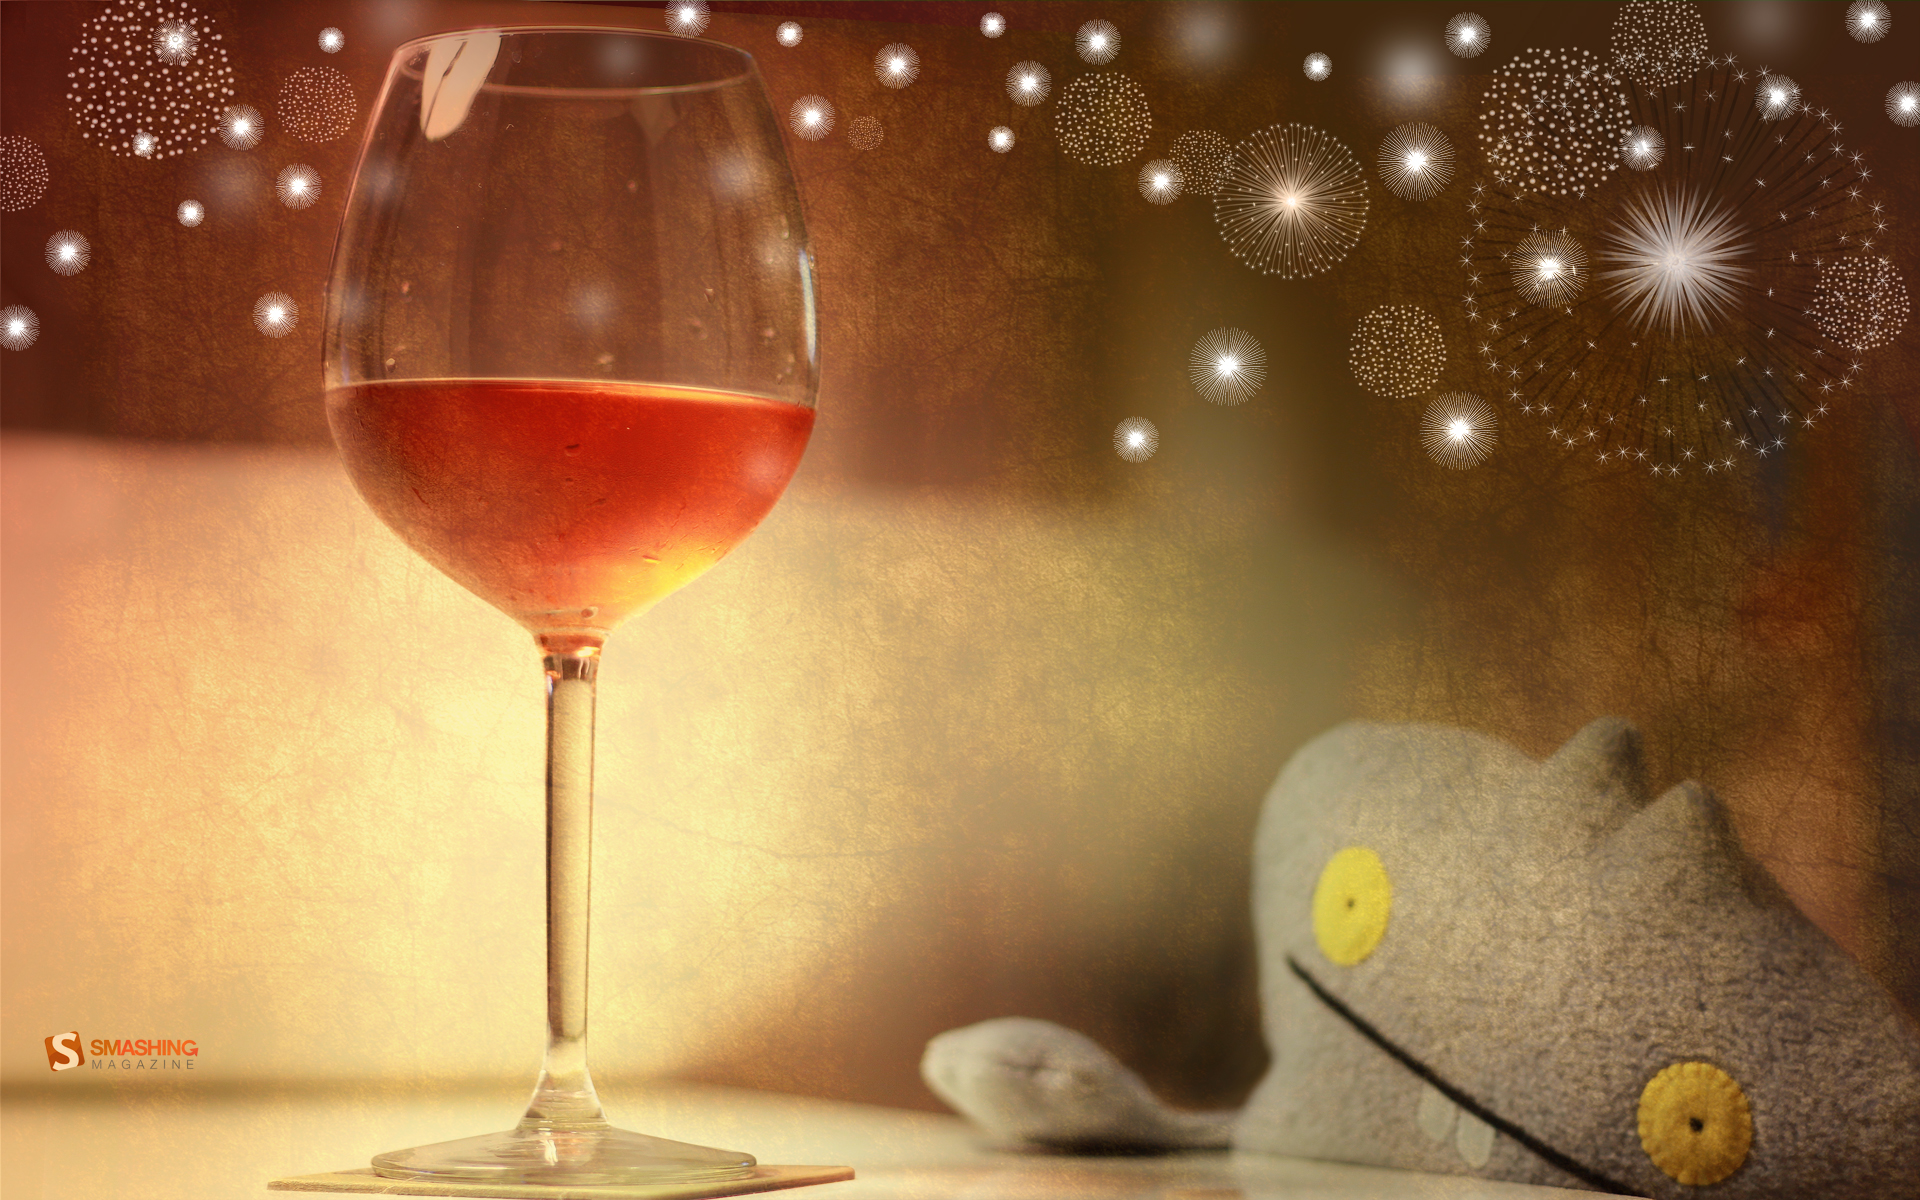 Happy Easter Wallpaper Quotes Glass Of Rose Wine Wallpapers Glass Of Rose Wine Stock